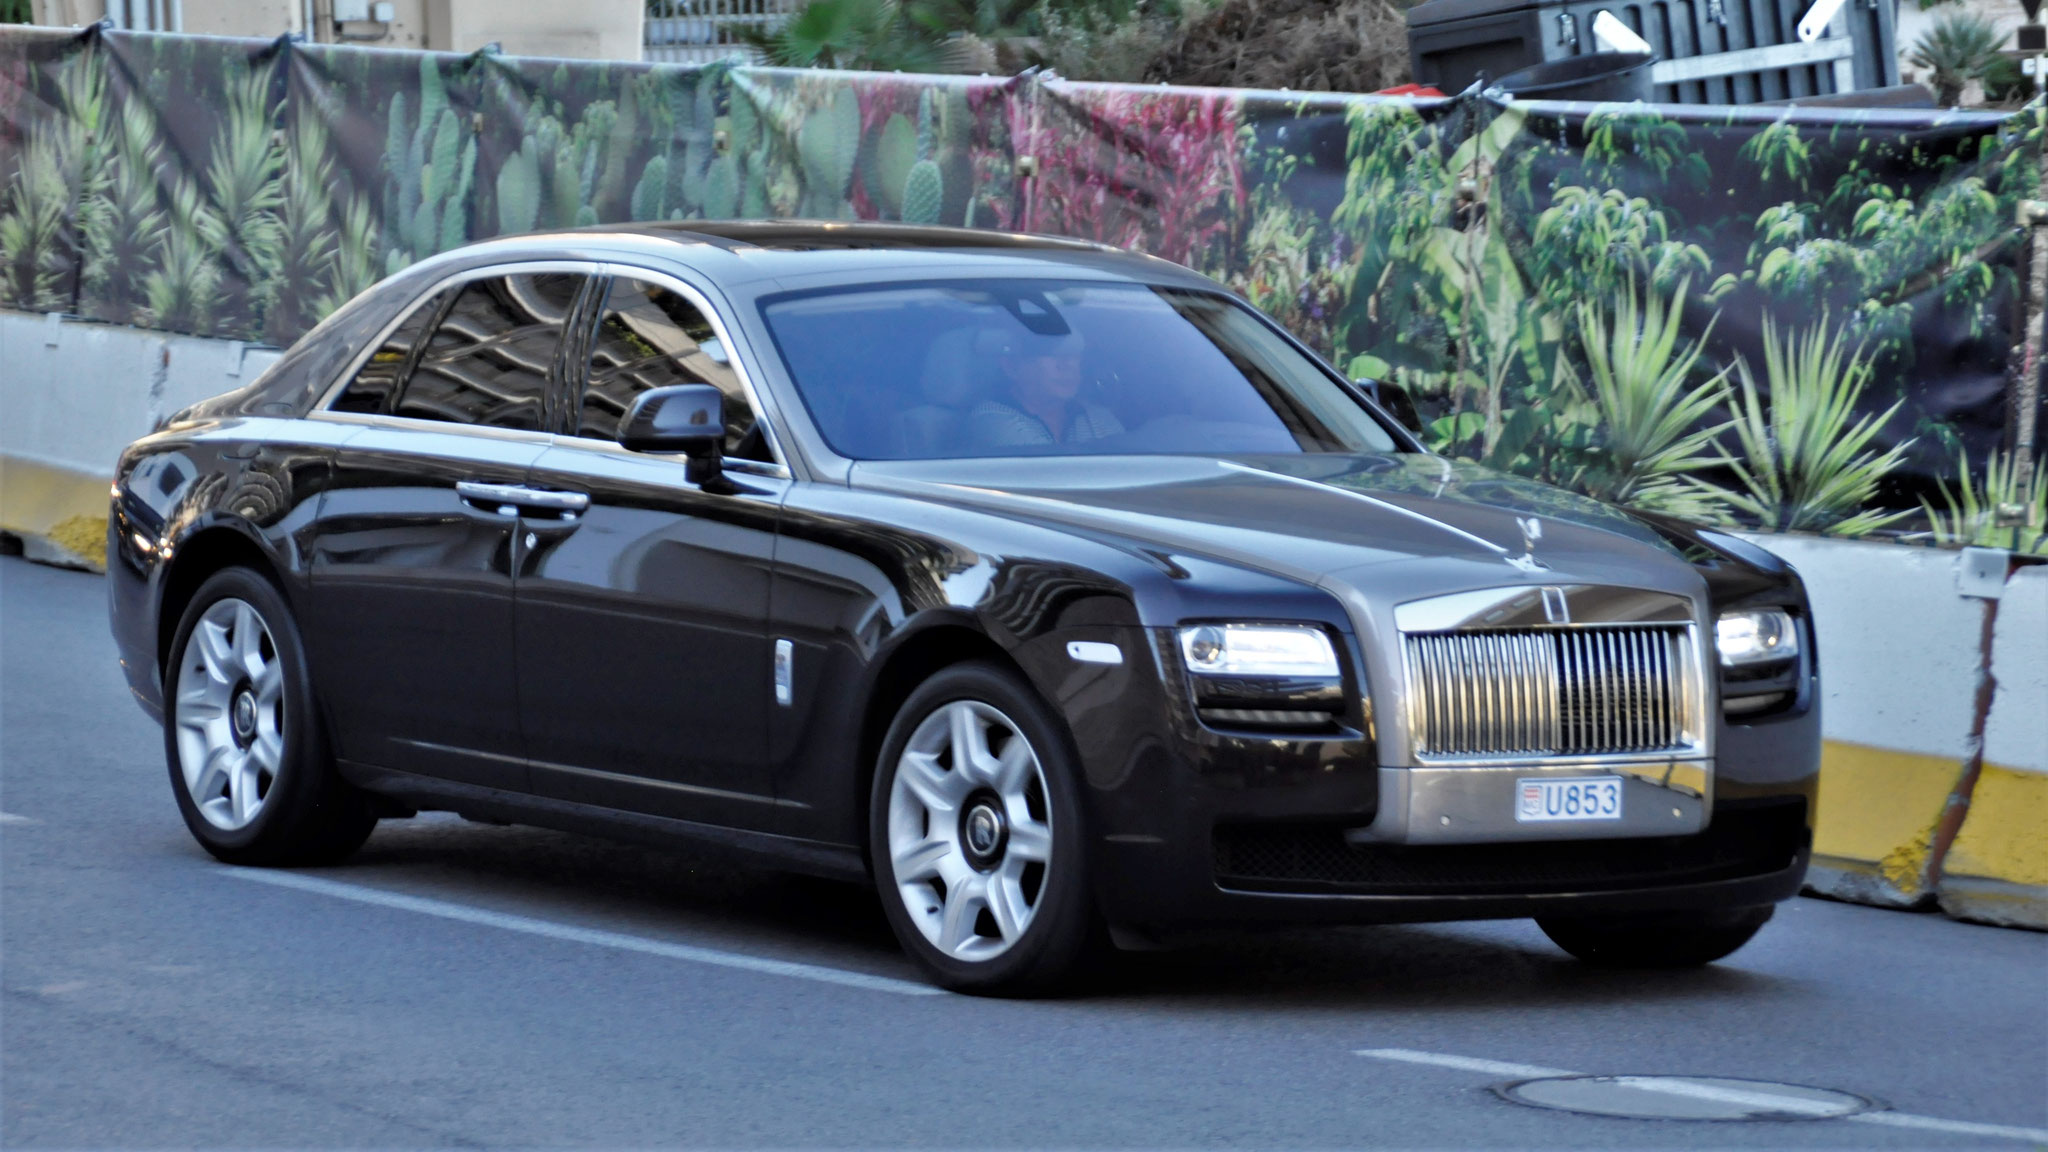 Rolls Royce Ghost - U853 (MC)